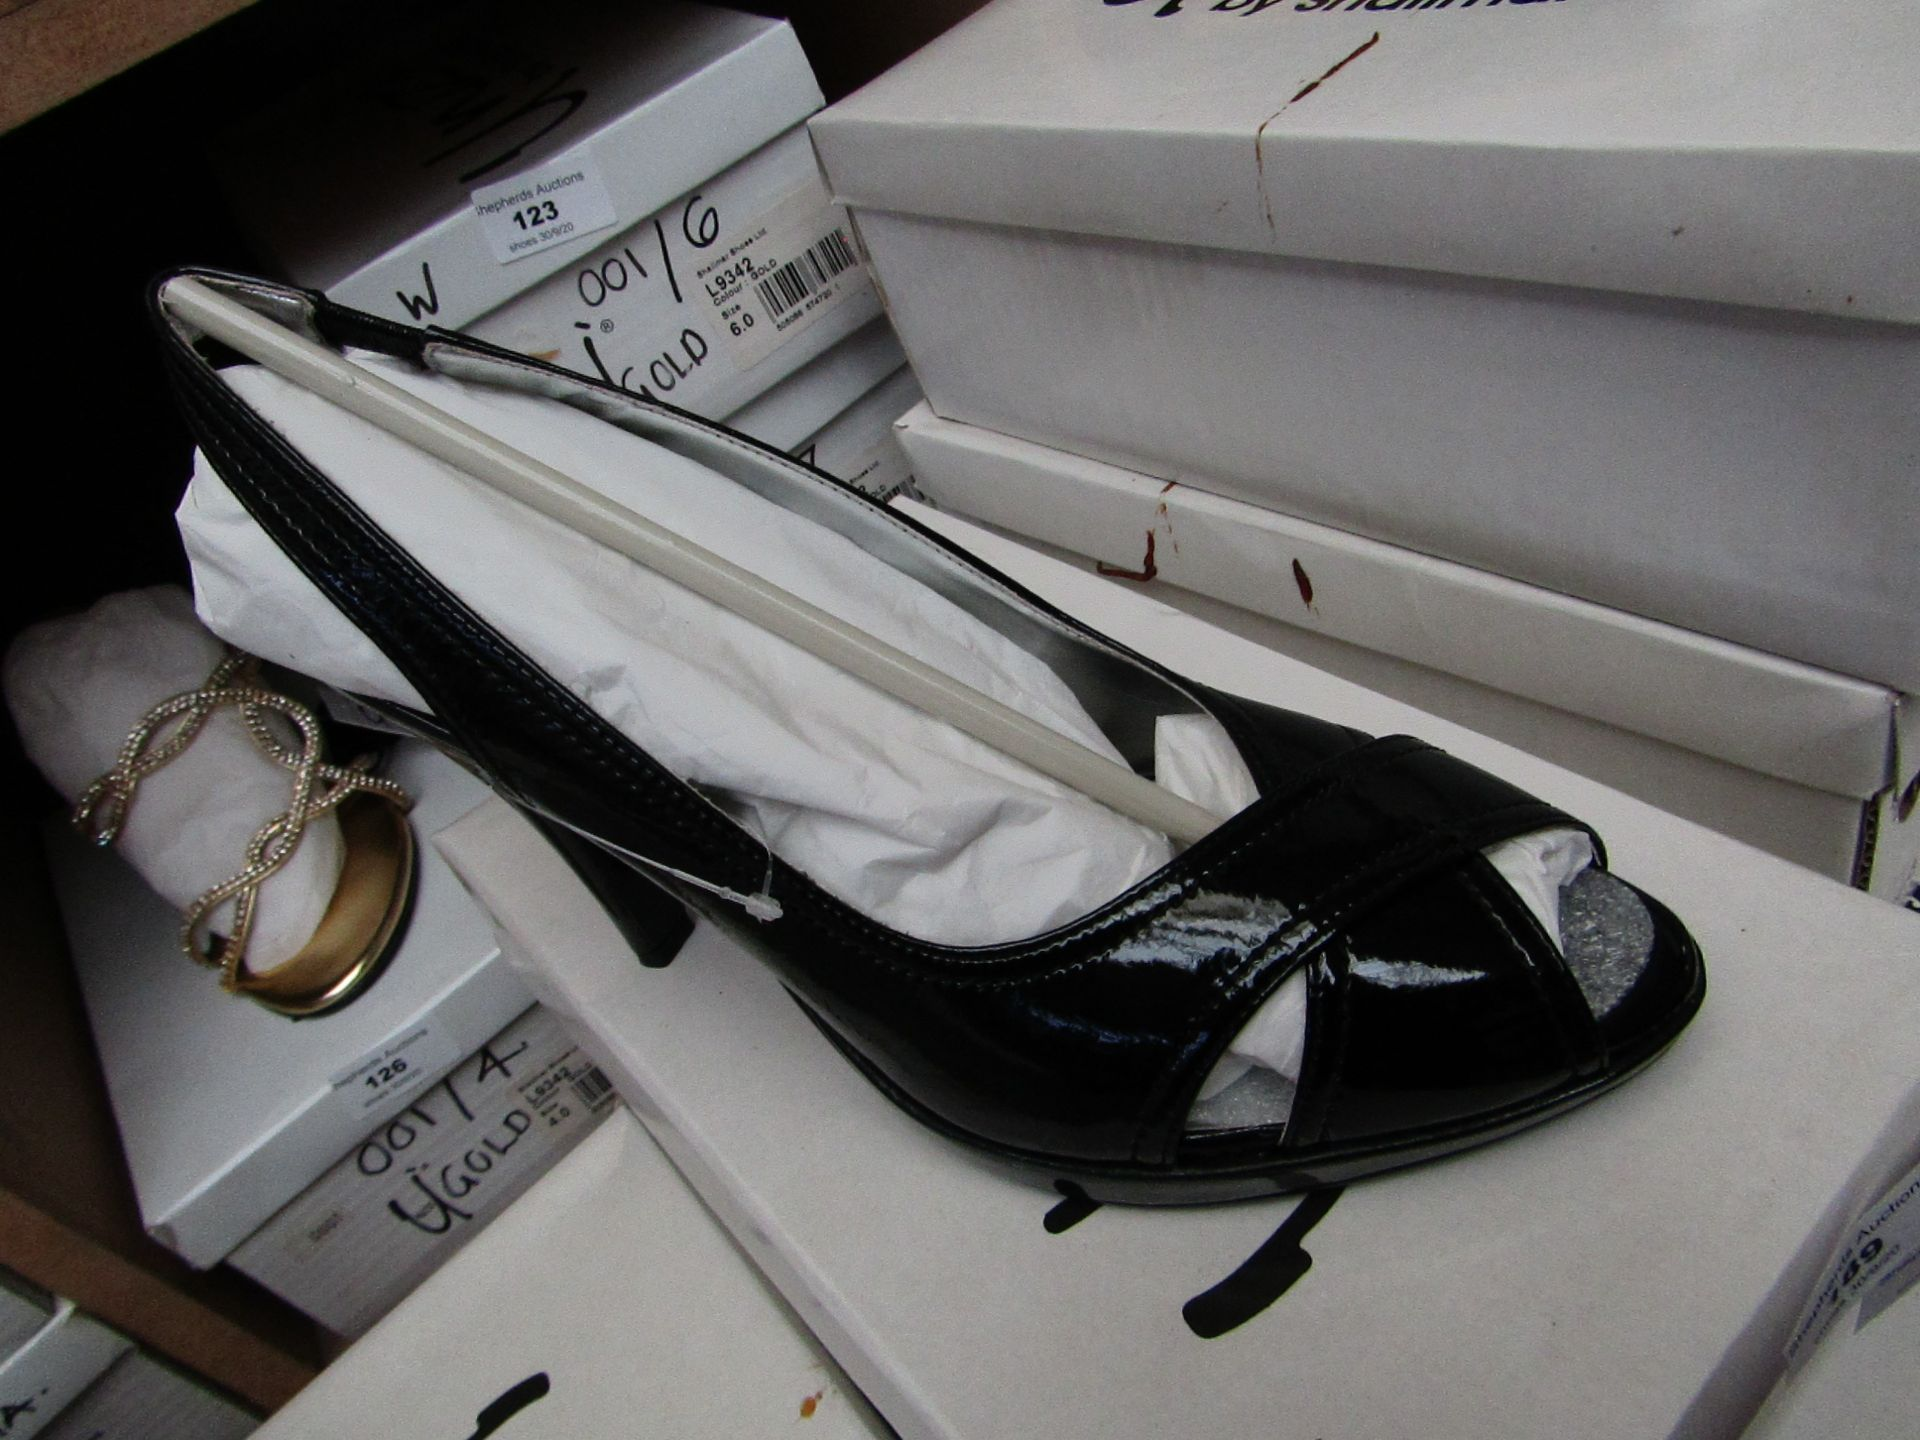 Unze by Shalamar Shoes Ladies Black Patent Leather Shoes size 7 new & boxed see image for design